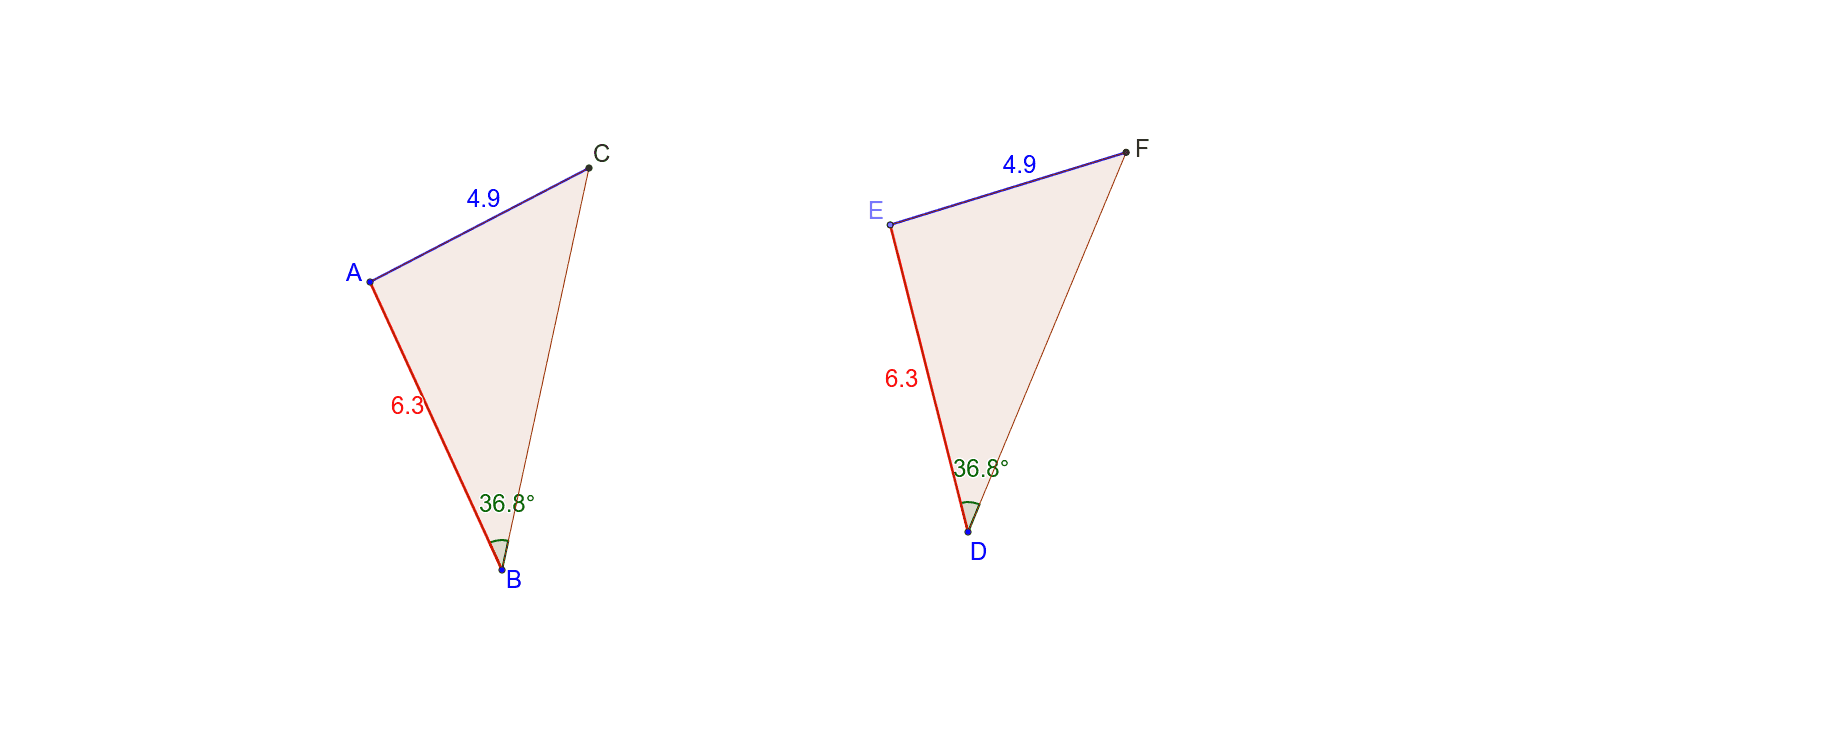 Drag any point on triangle ABC to resize the triangle. Study what happens to triangle EDF when you resize triangle ABC. Also try to coincide (put one triangle on top of the other) and see if they match up. Press Enter to start activity